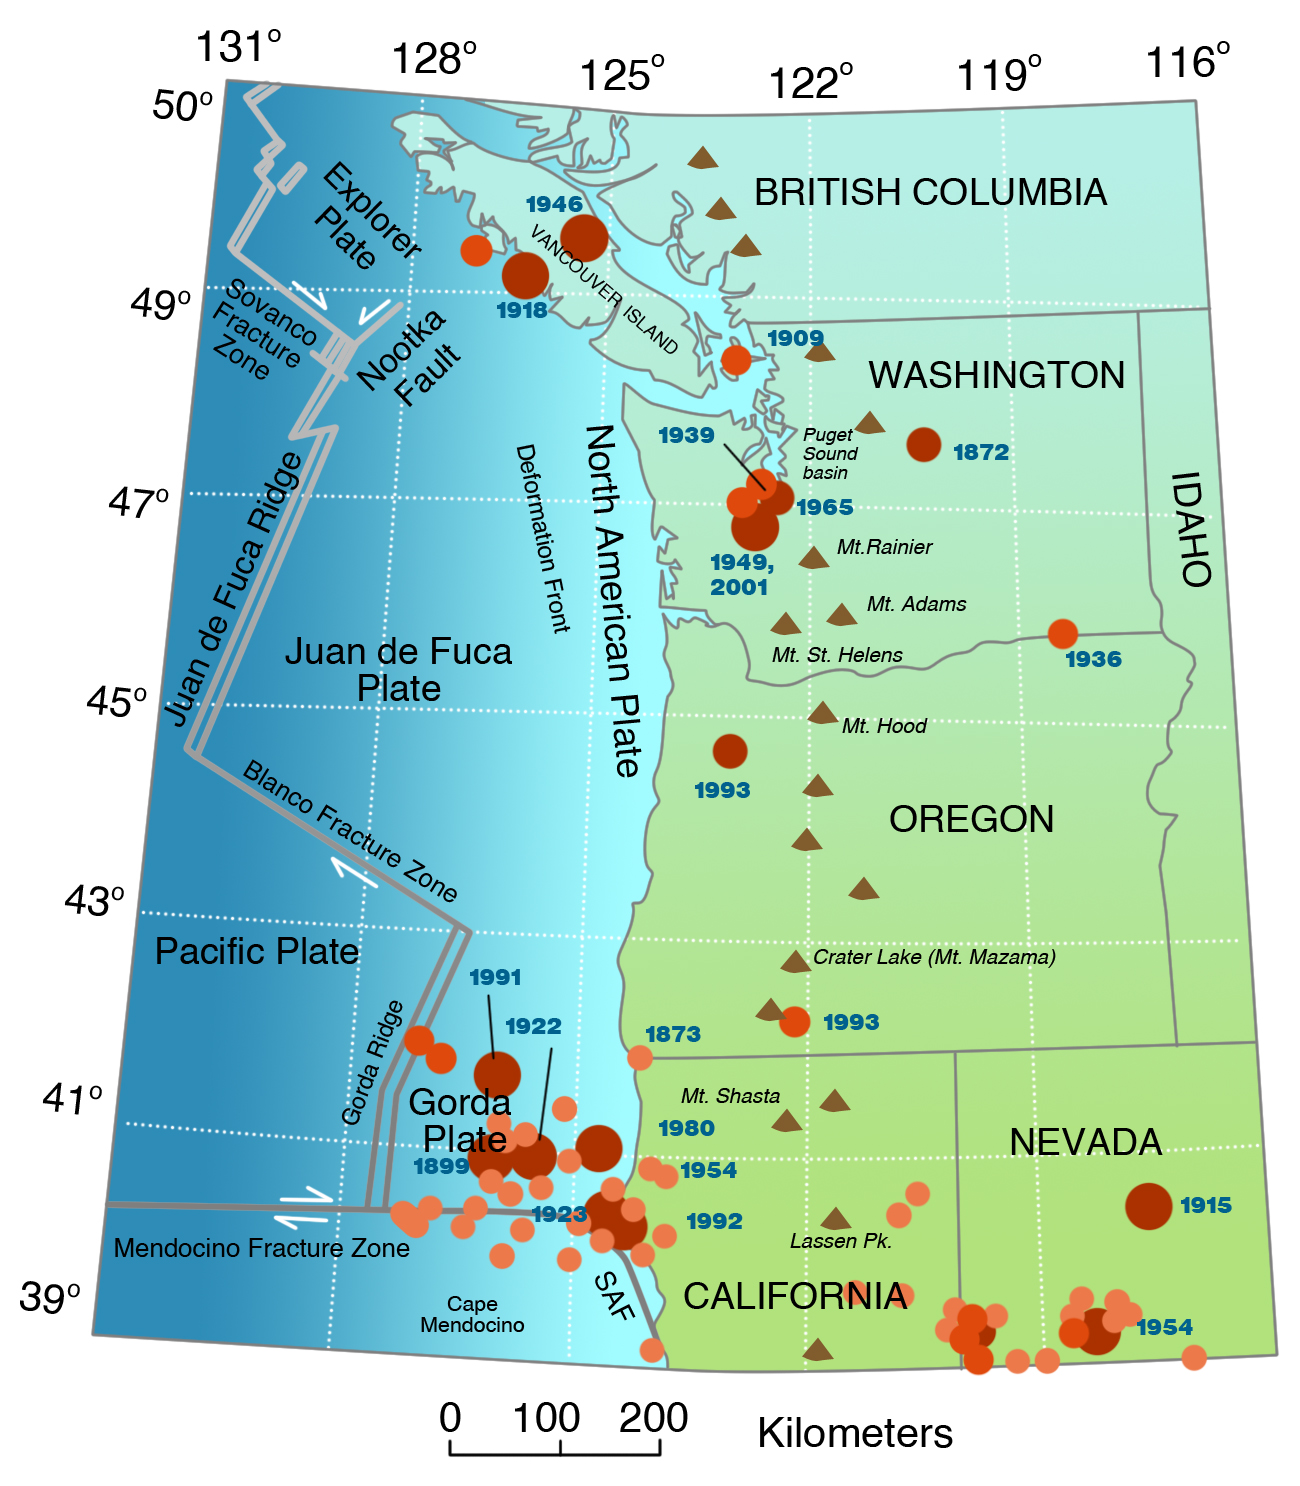 Image pacific northwest clipart map clipart free library Outline Map Of Pacific Northwest With Image Clipart ~ Free ... clipart free library